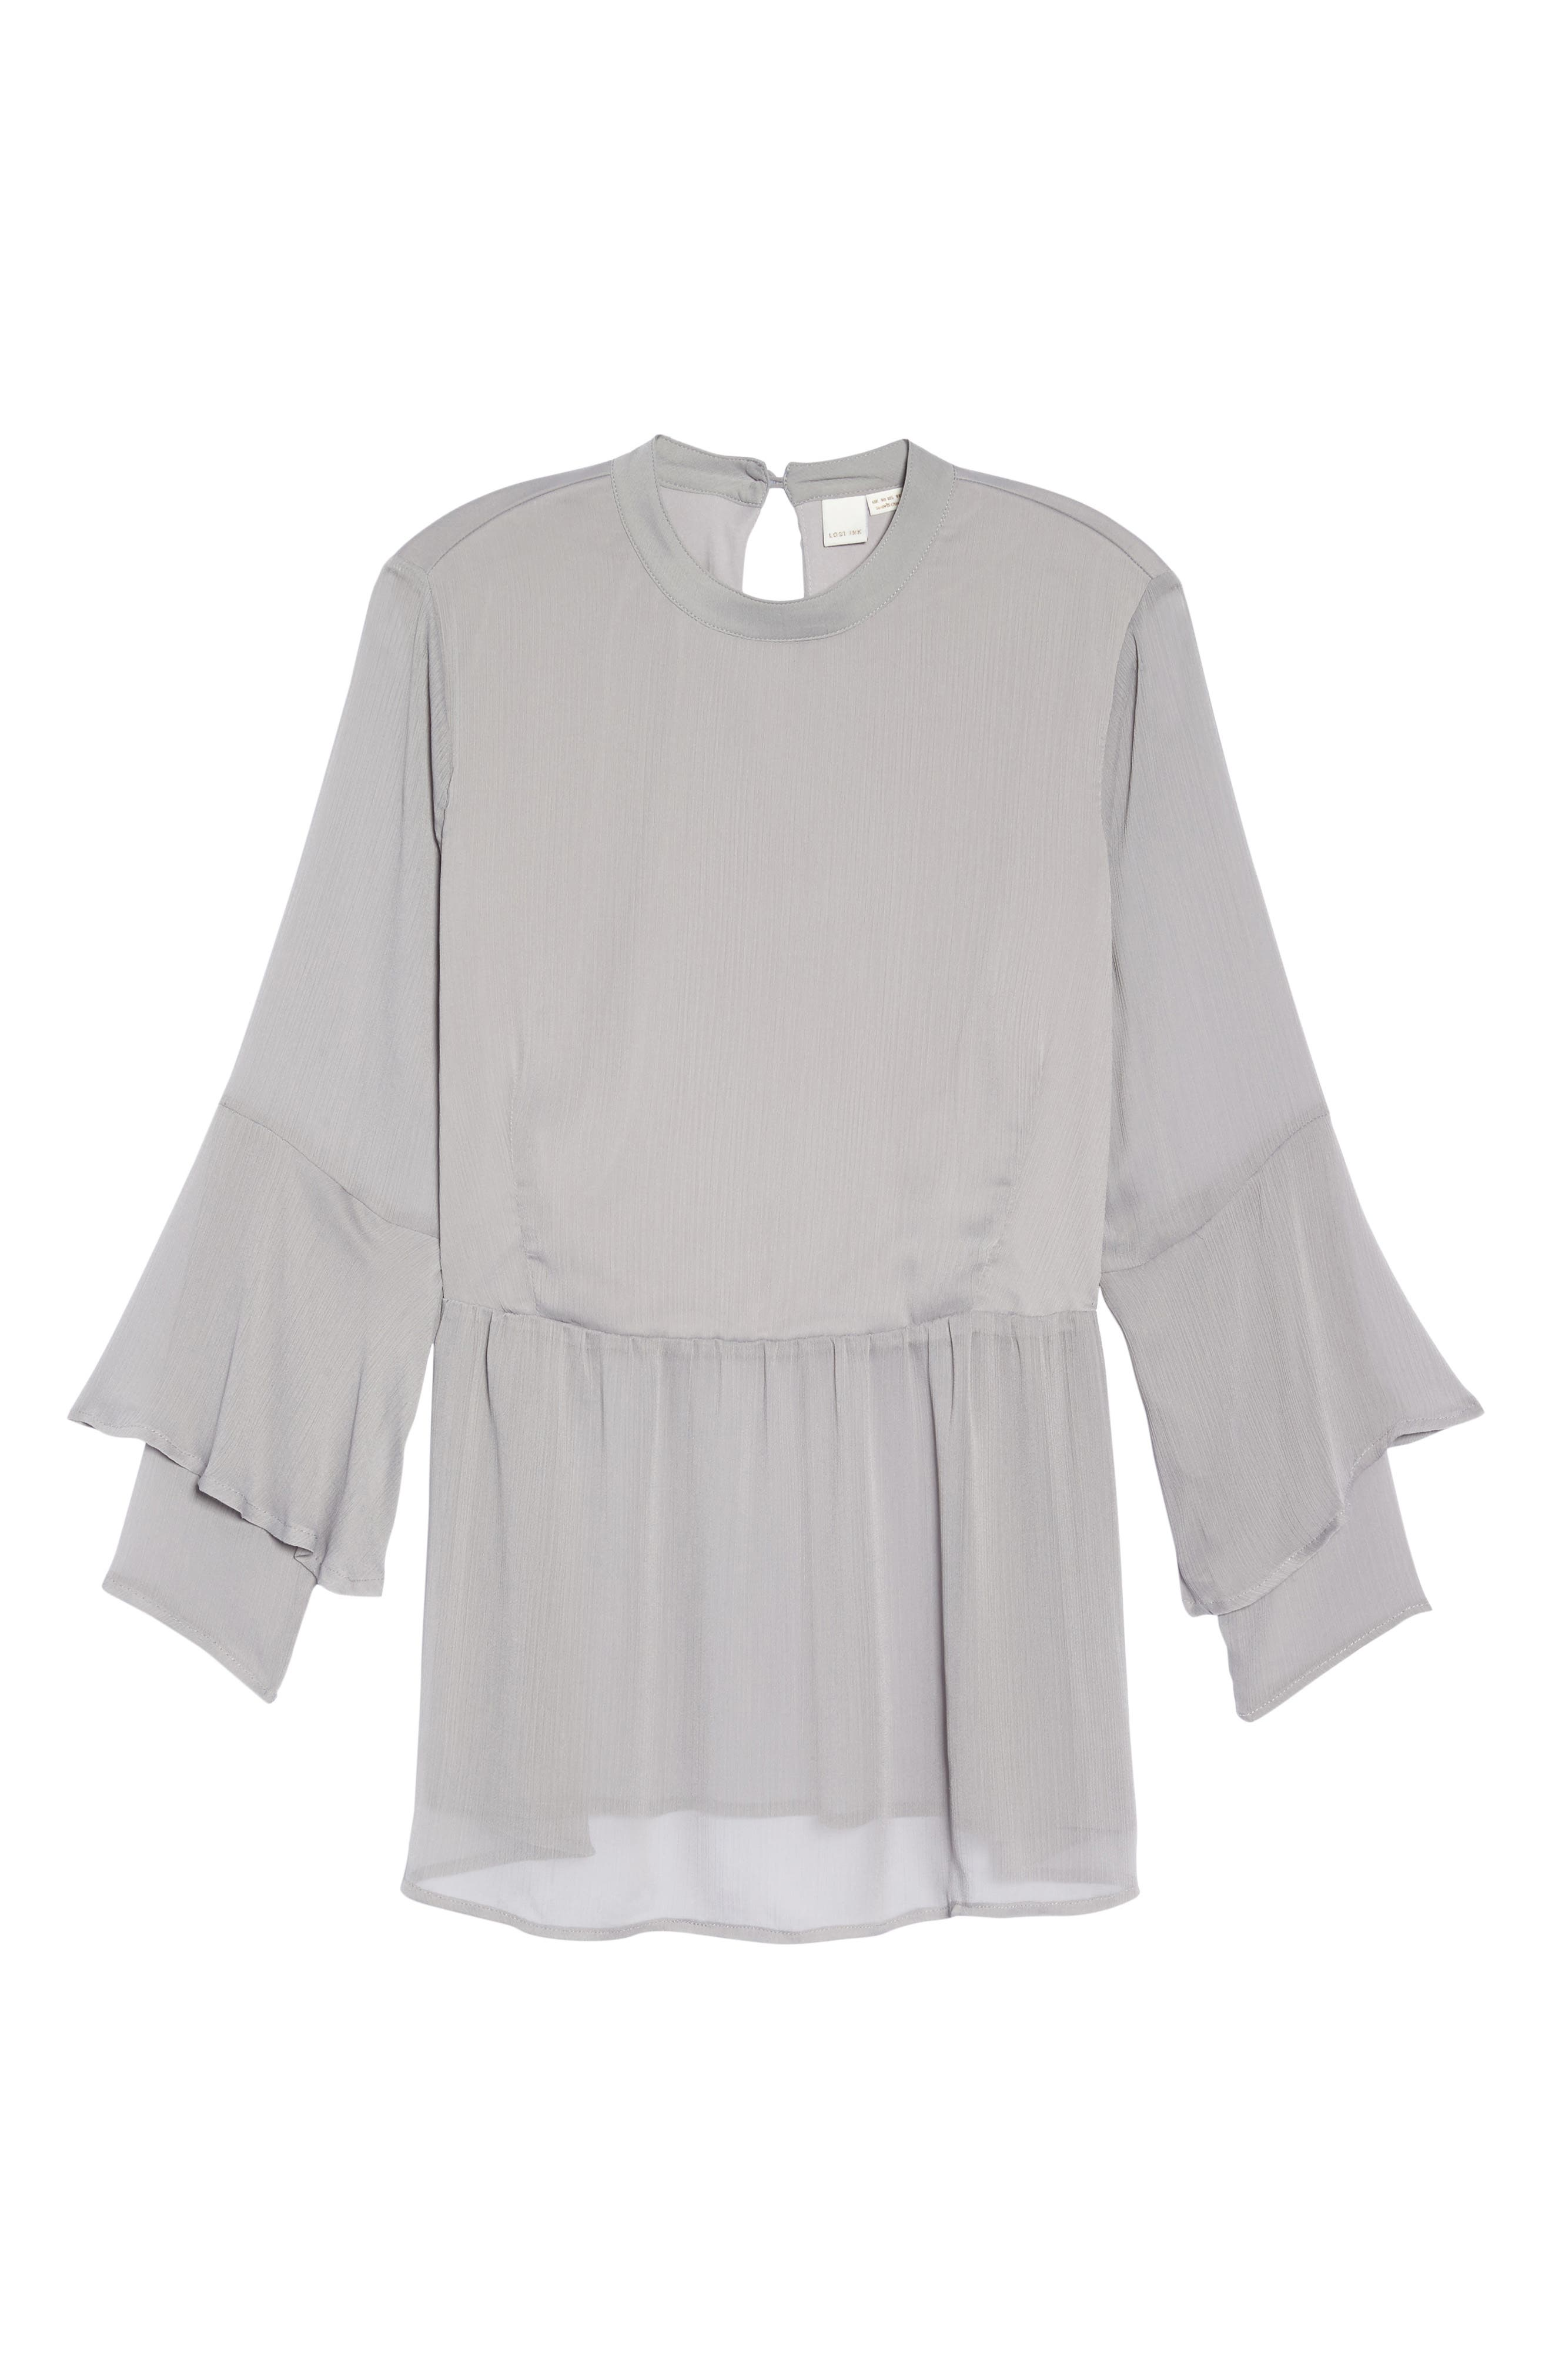 Crinkled Chiffon Top,                             Alternate thumbnail 6, color,                             Grey